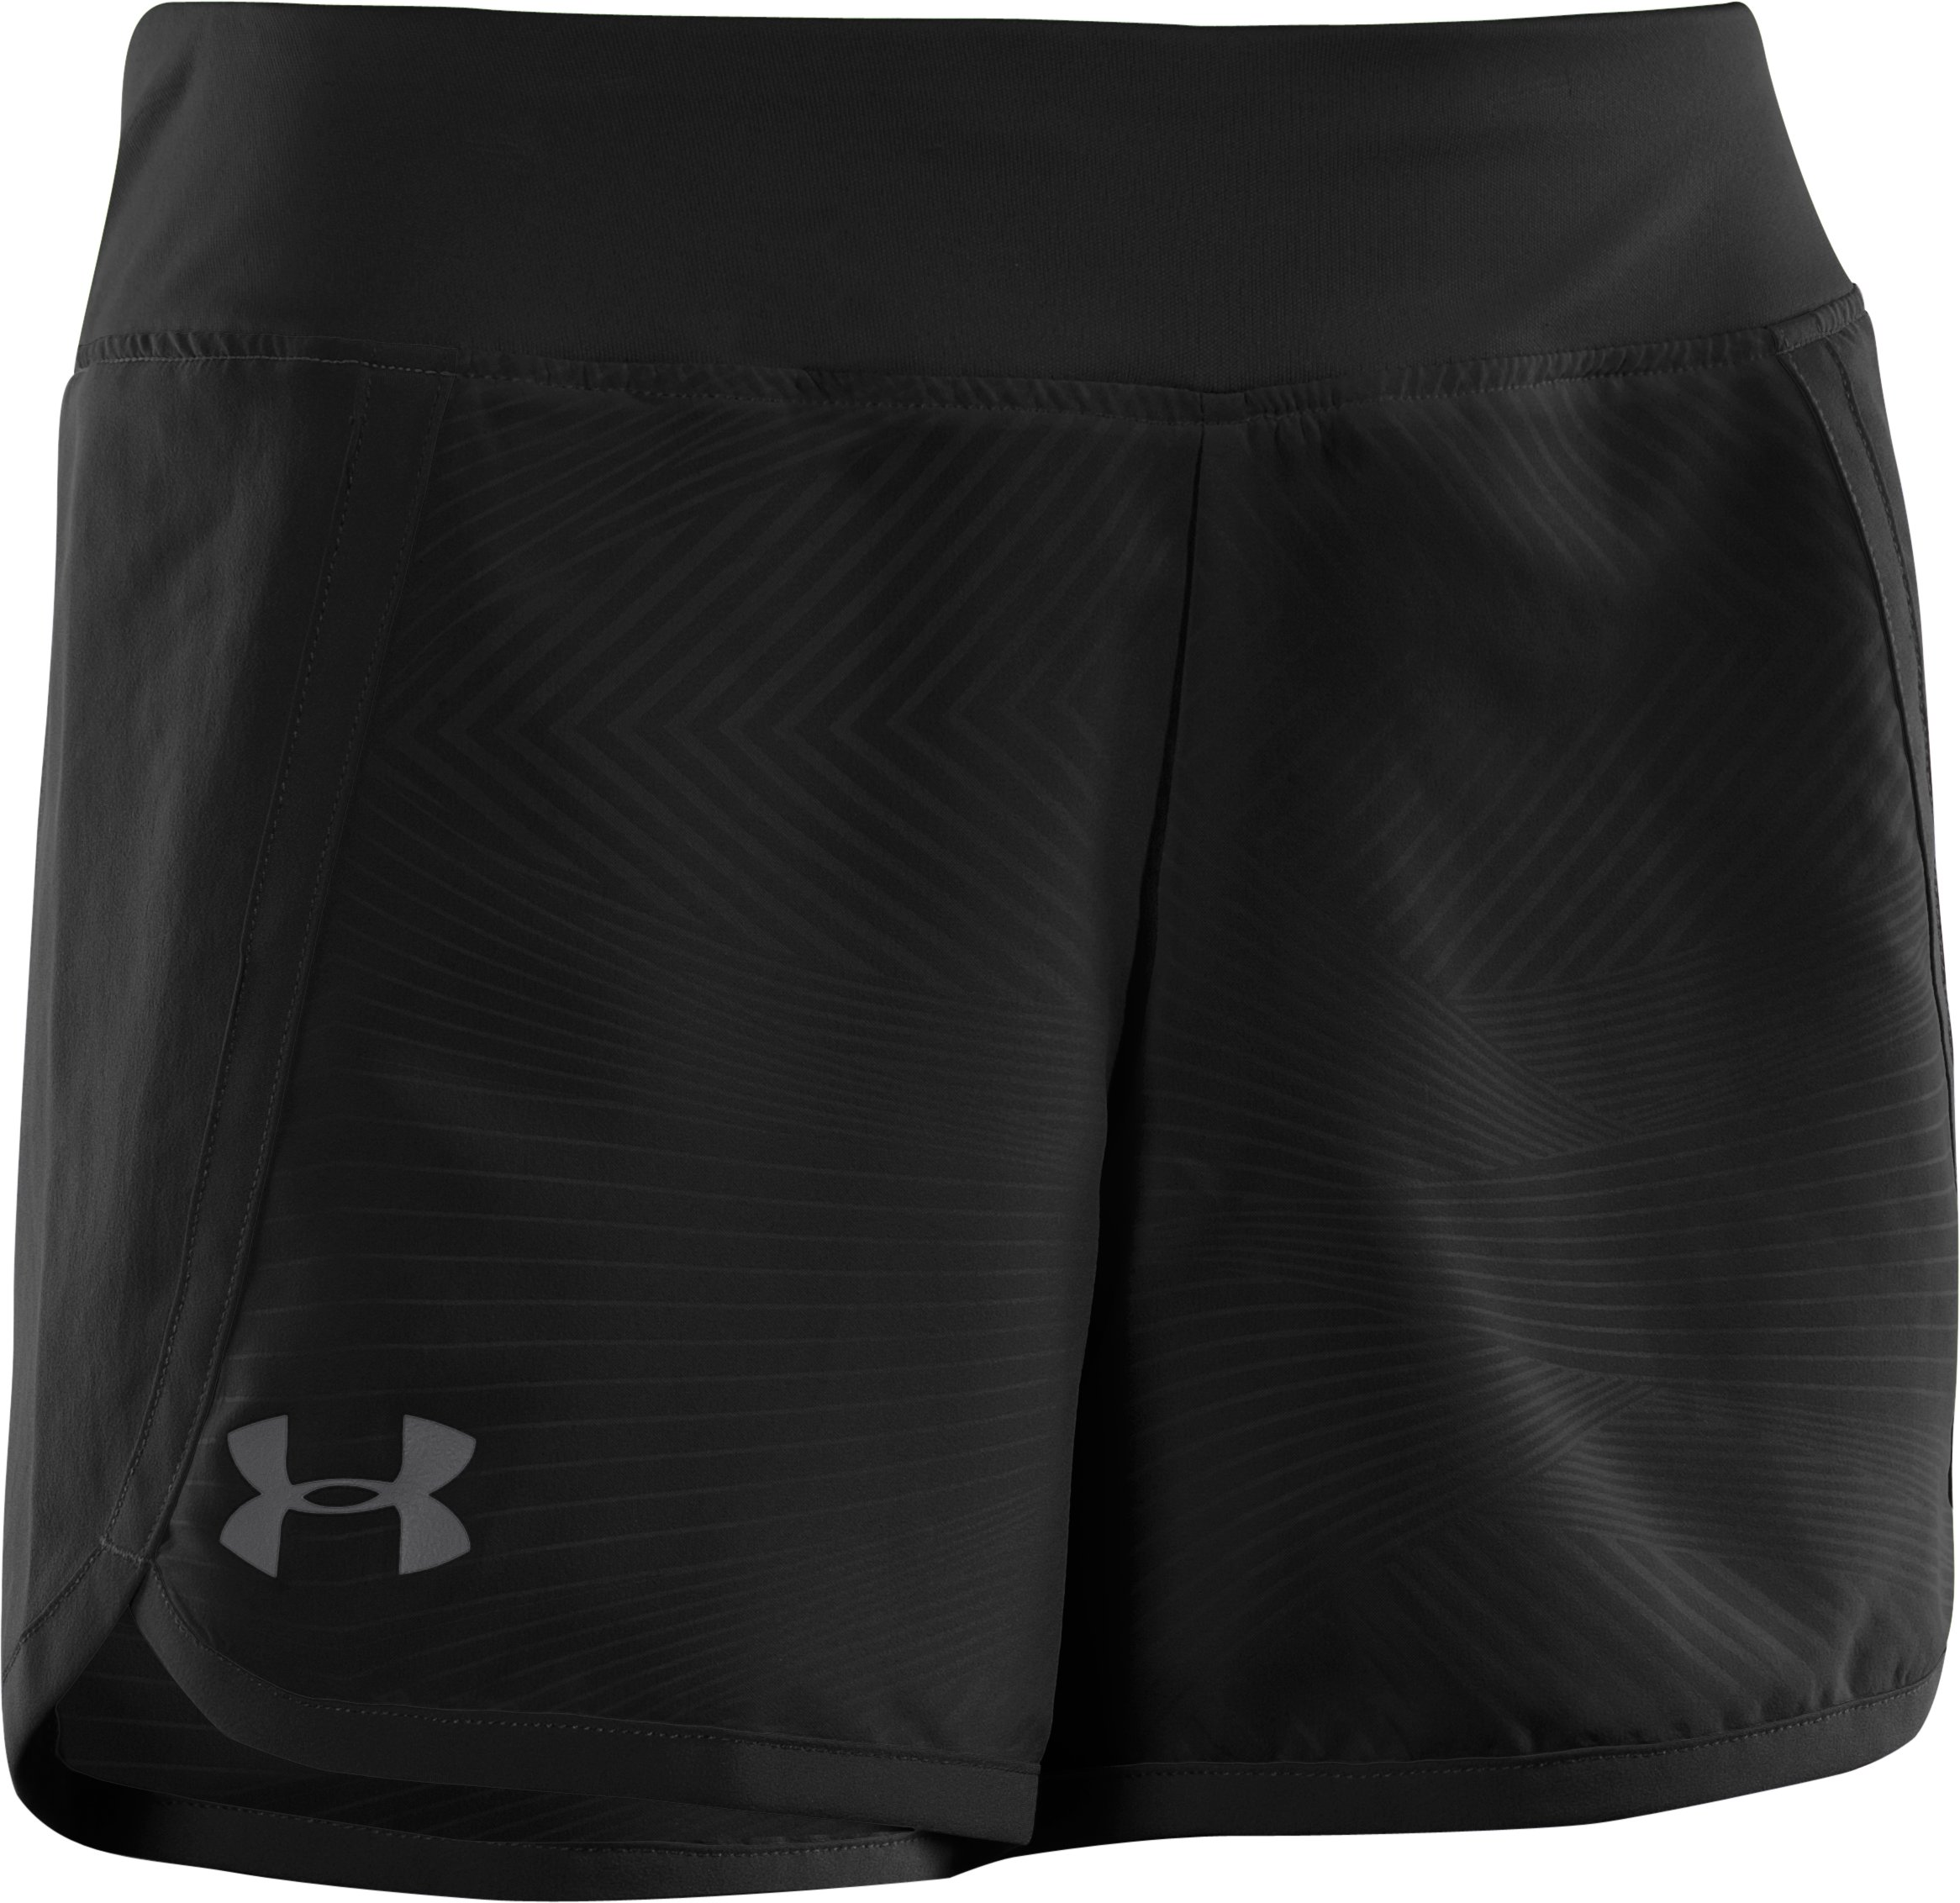 "Girls' UA Ripping 3"" Shorts, Black"